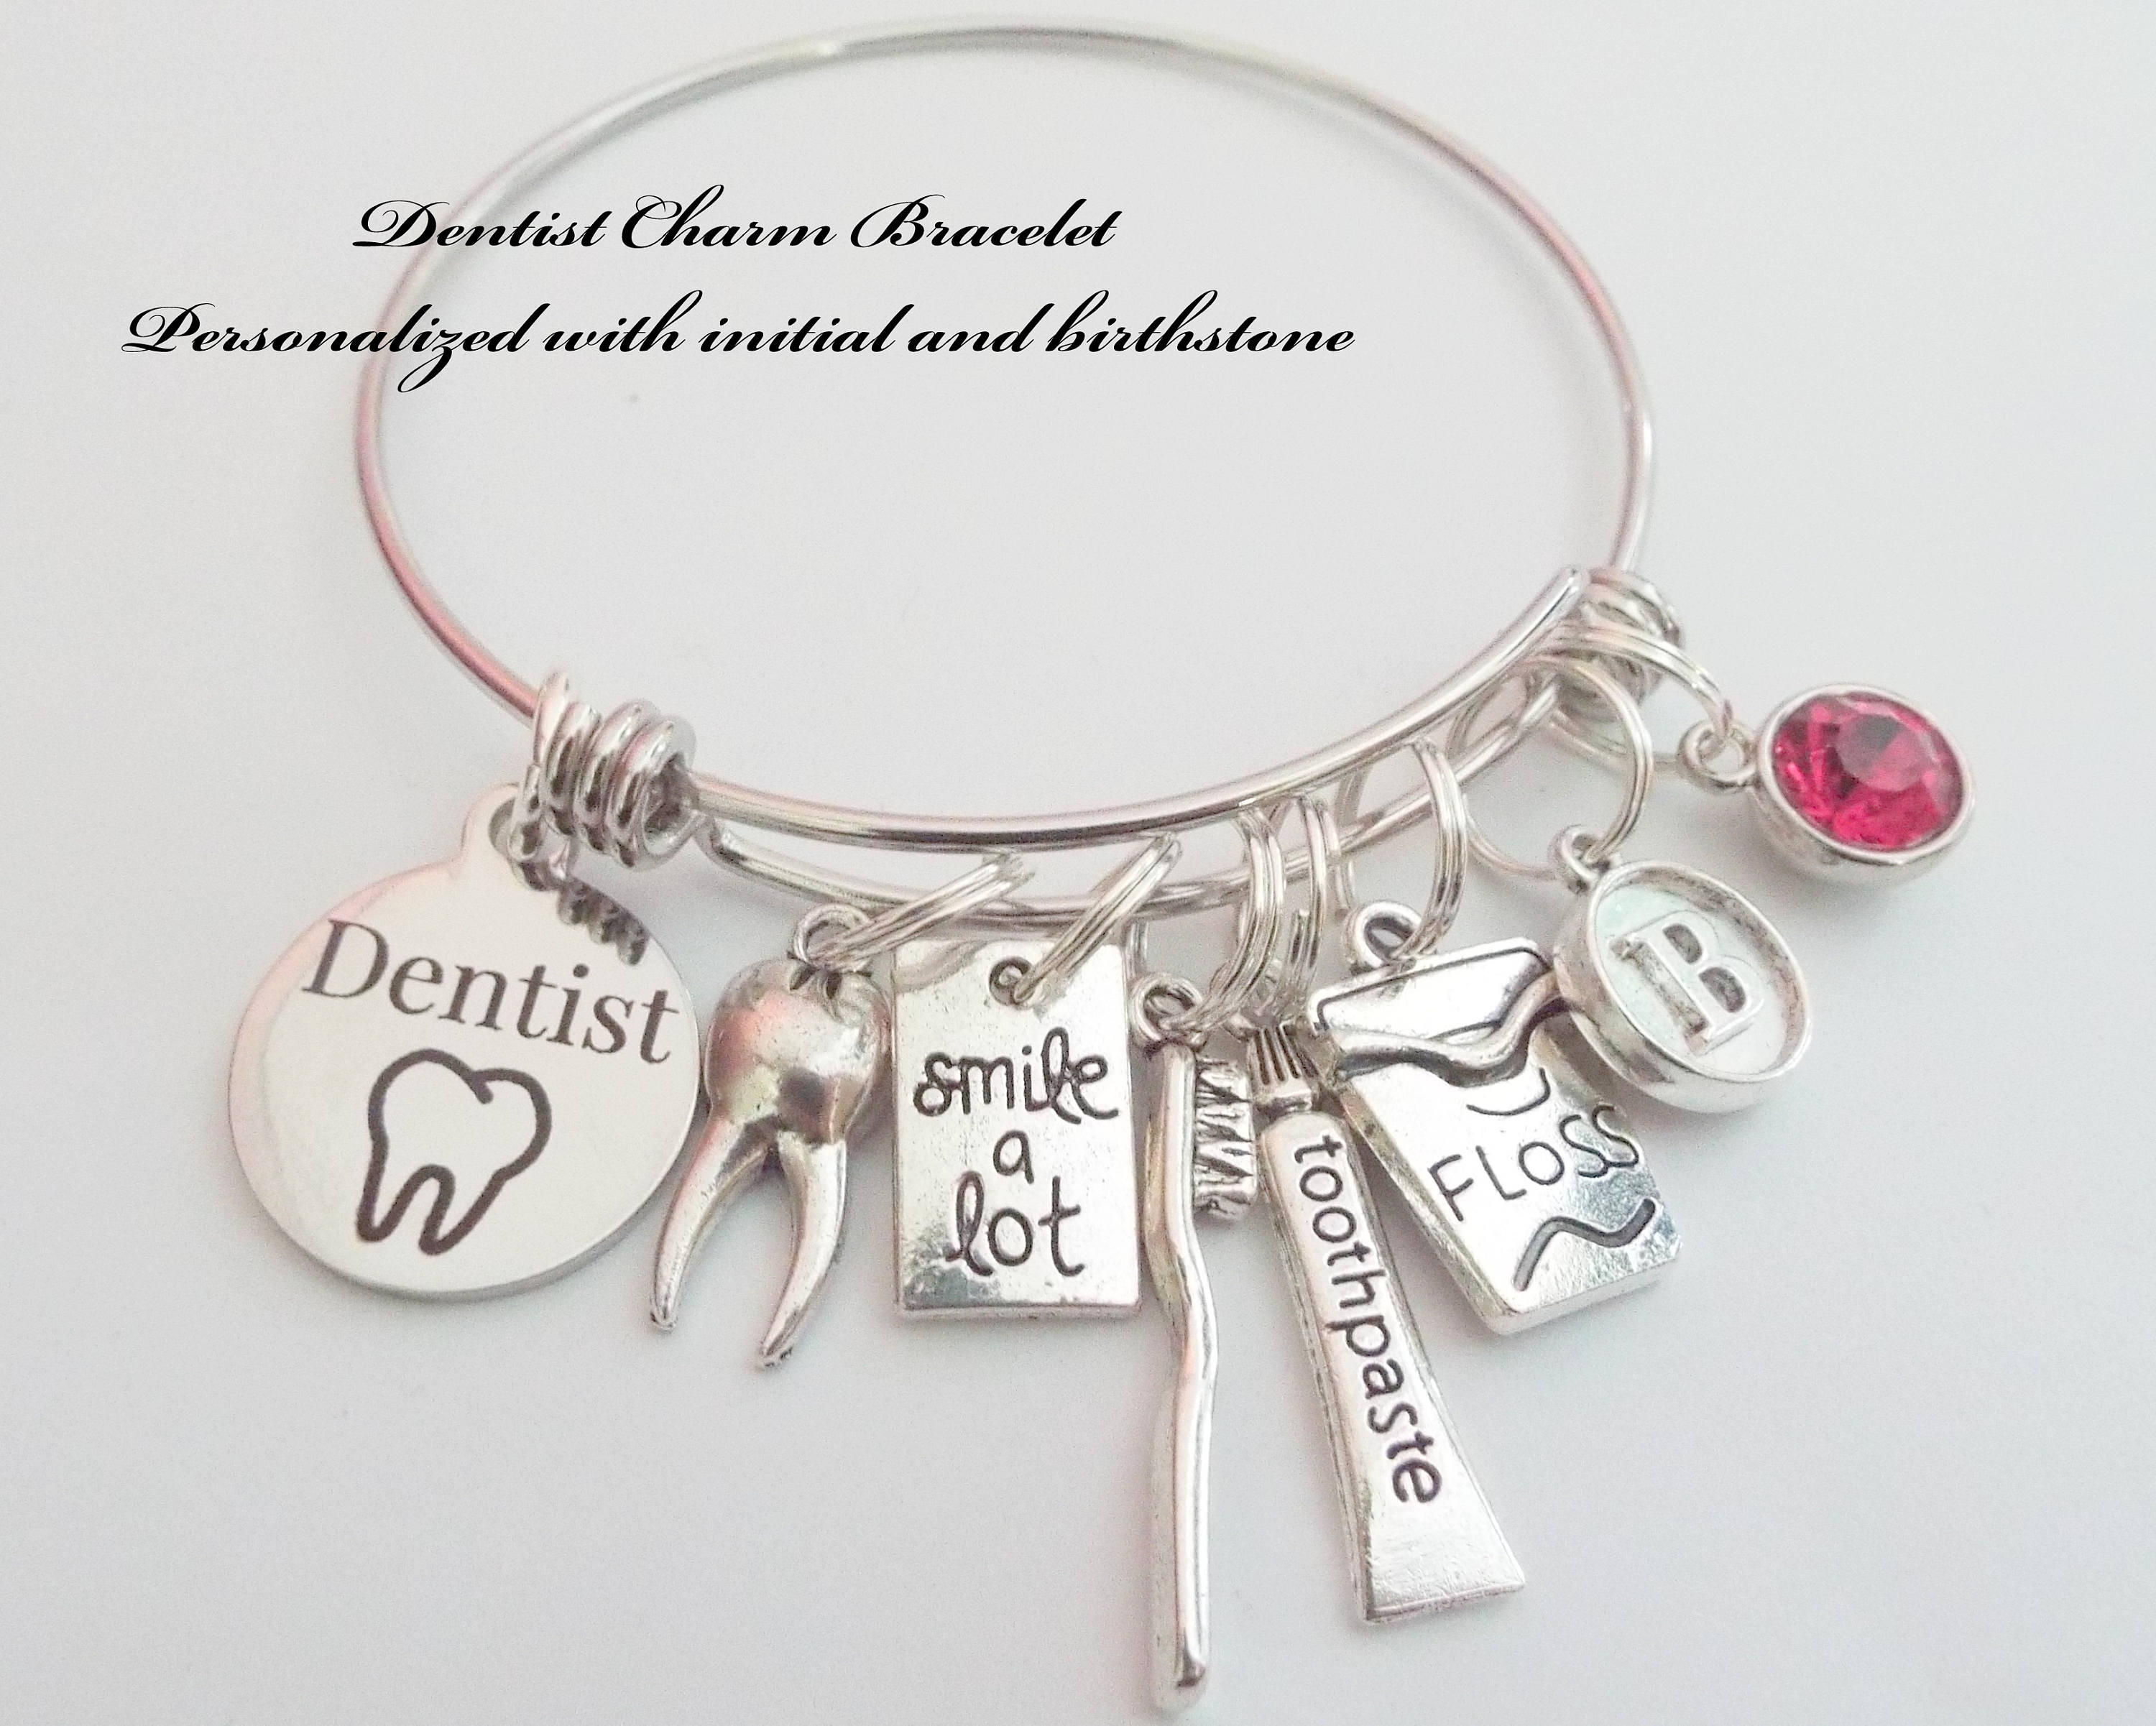 personalized a lola graduation graduate bracelet new with jewelryd ro for charm product gift